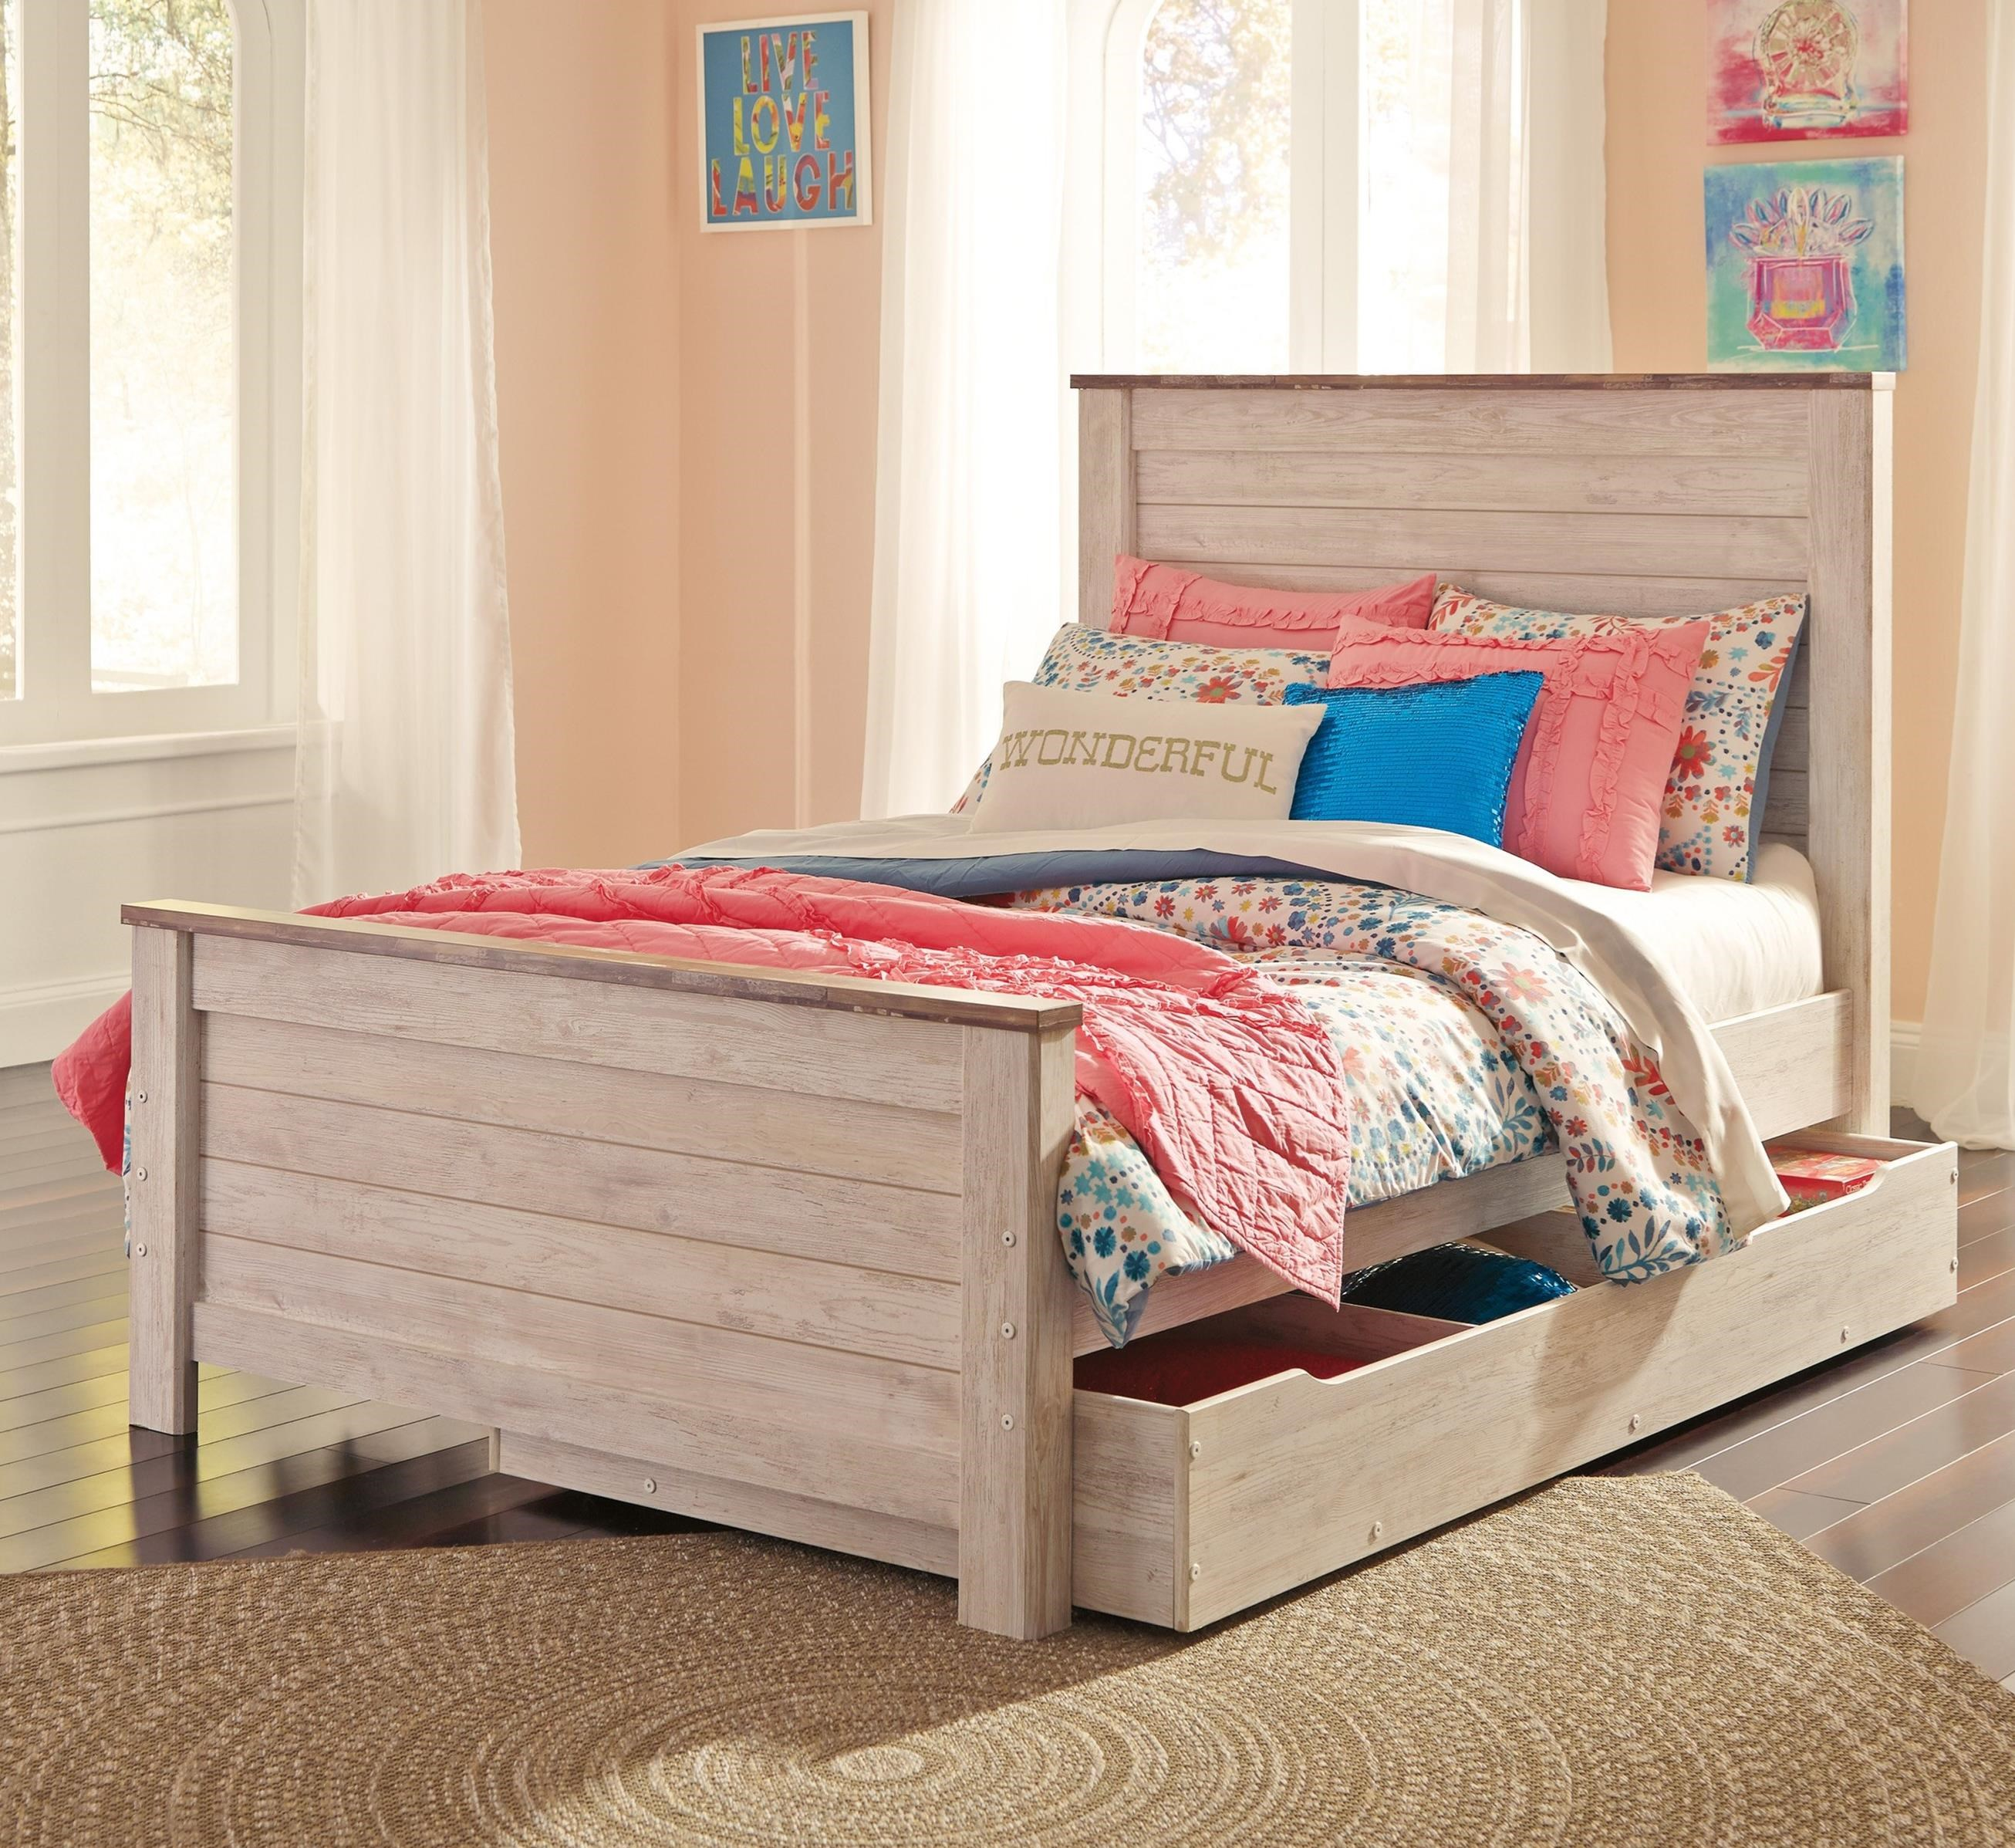 Two-Tone Full Panel Bed with Under Bed Storage